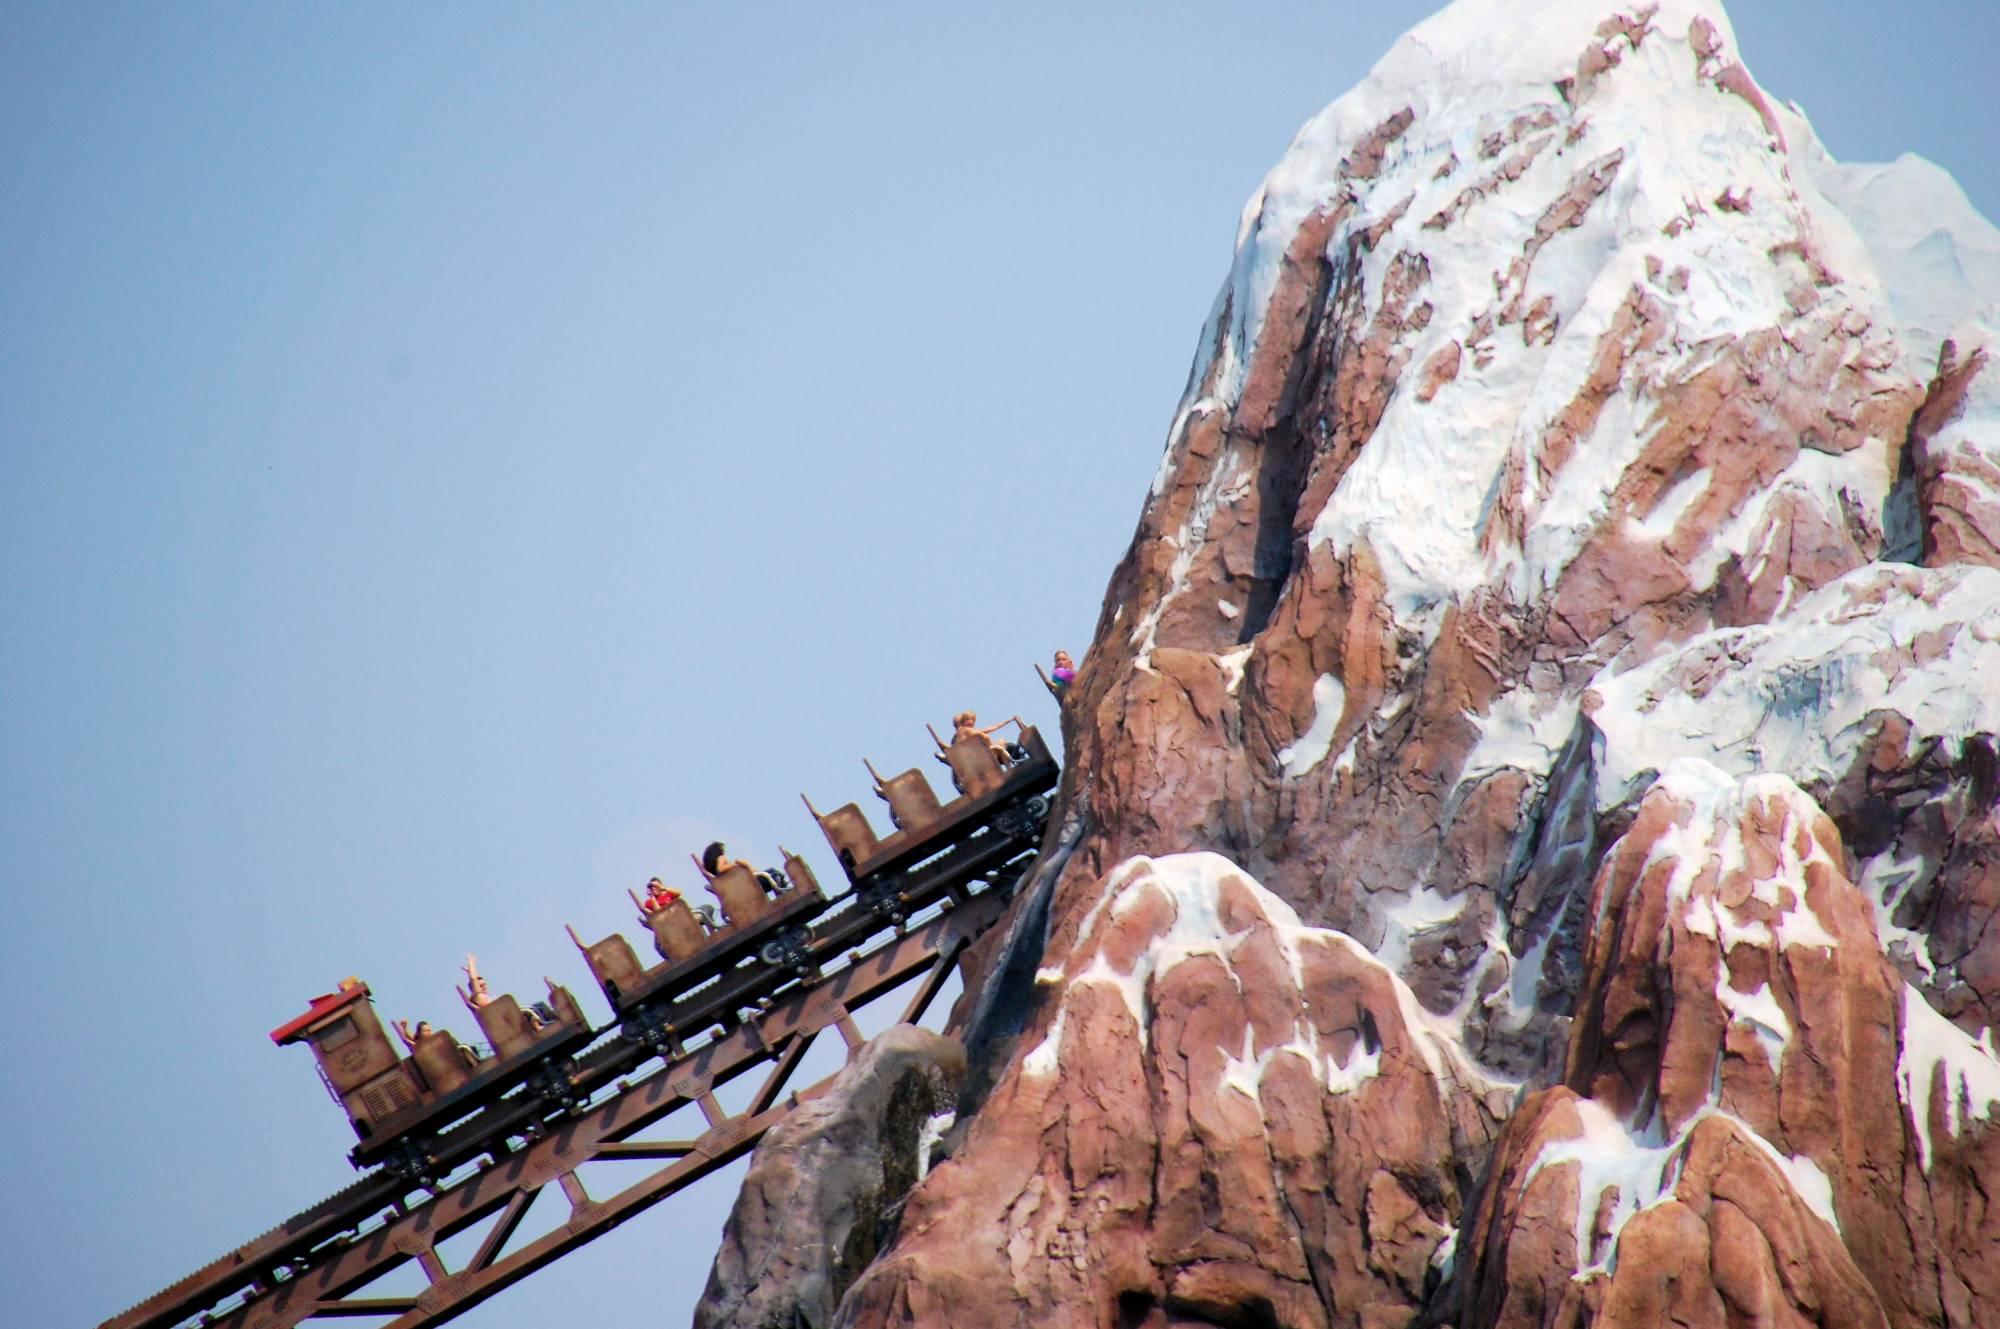 Learn how to conquer your fears on thrill rides at Walt Disney World |PassPorter.com